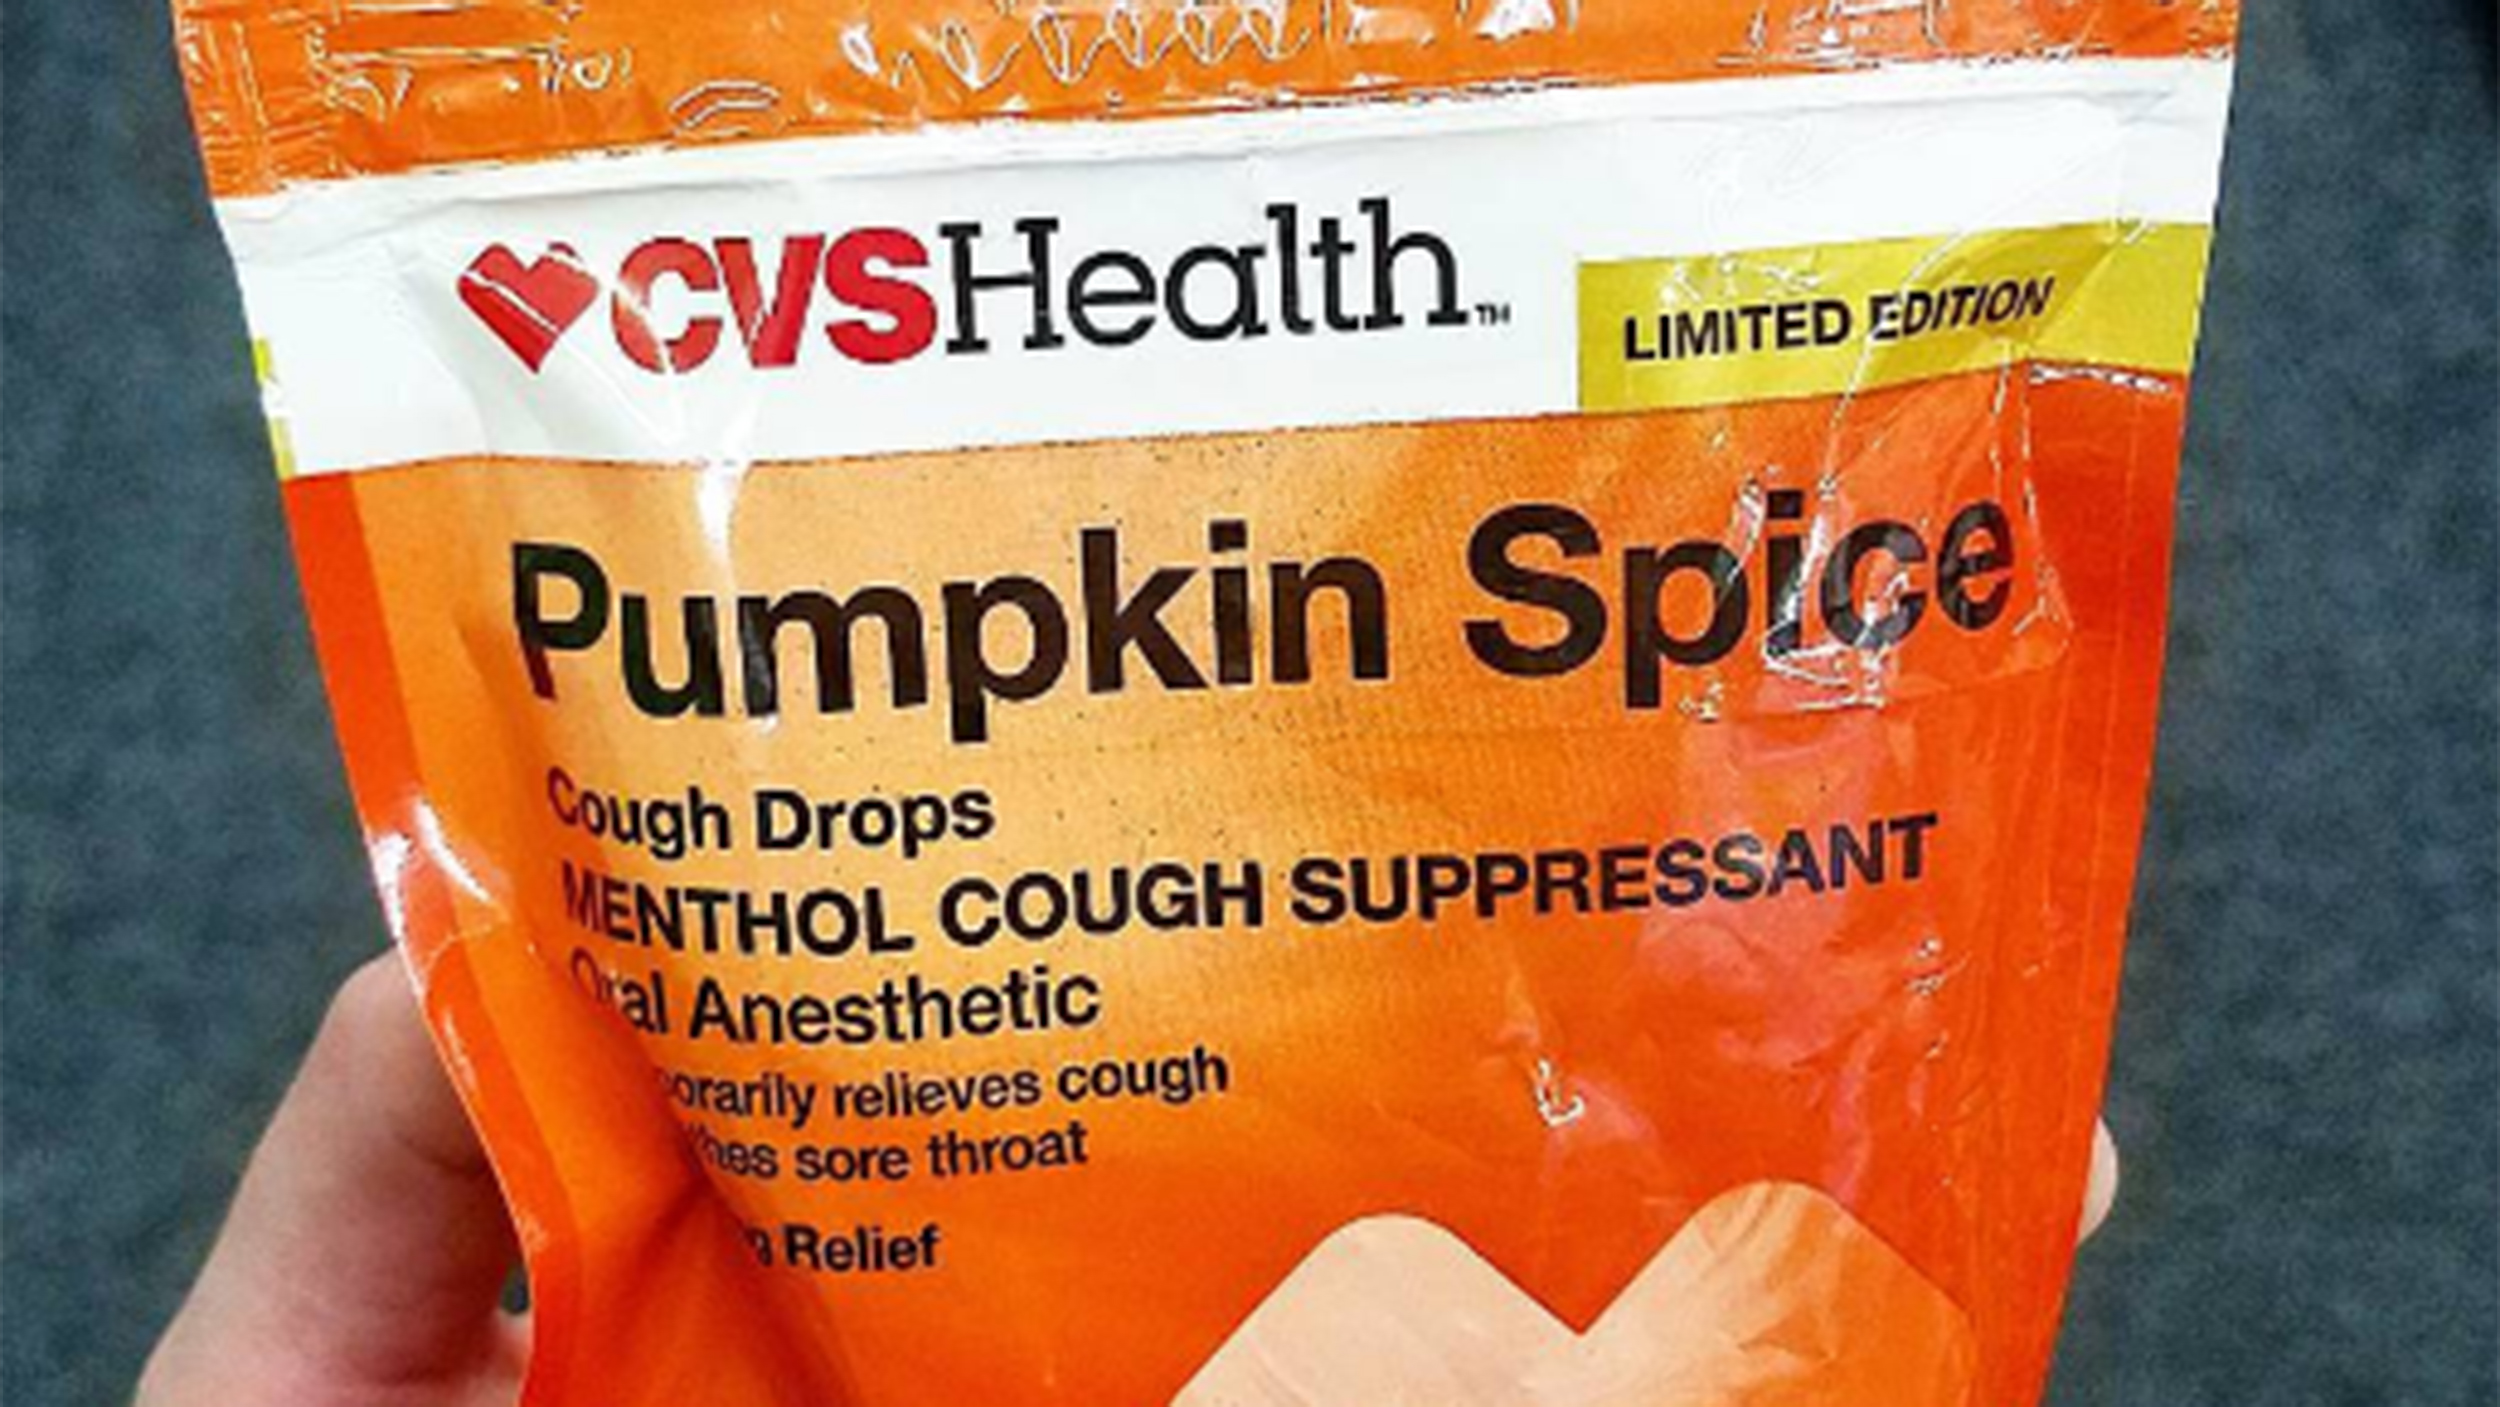 Pumpkin spice cough drops?! Yes, they're here for a limited